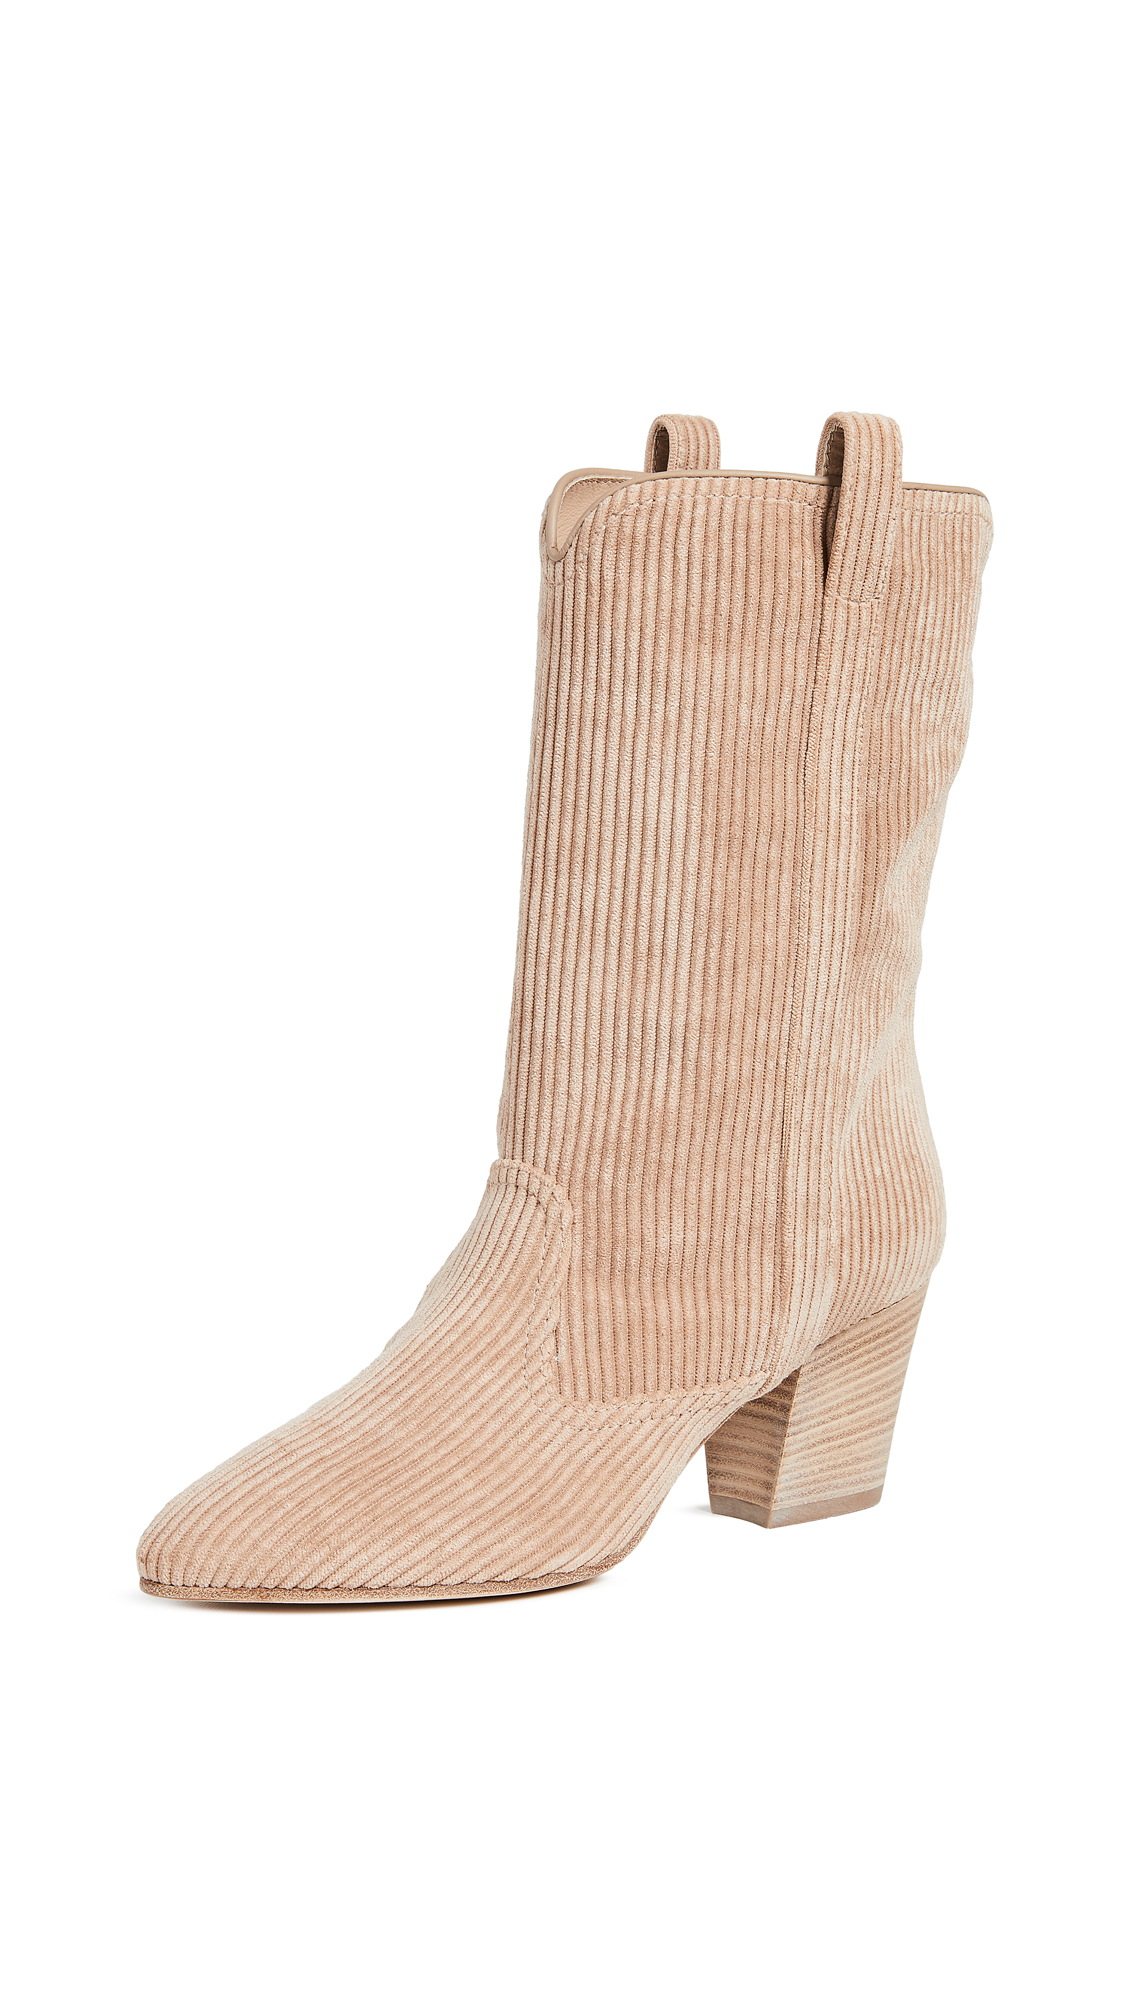 Simona Corduroy Ankle Boots in Beige